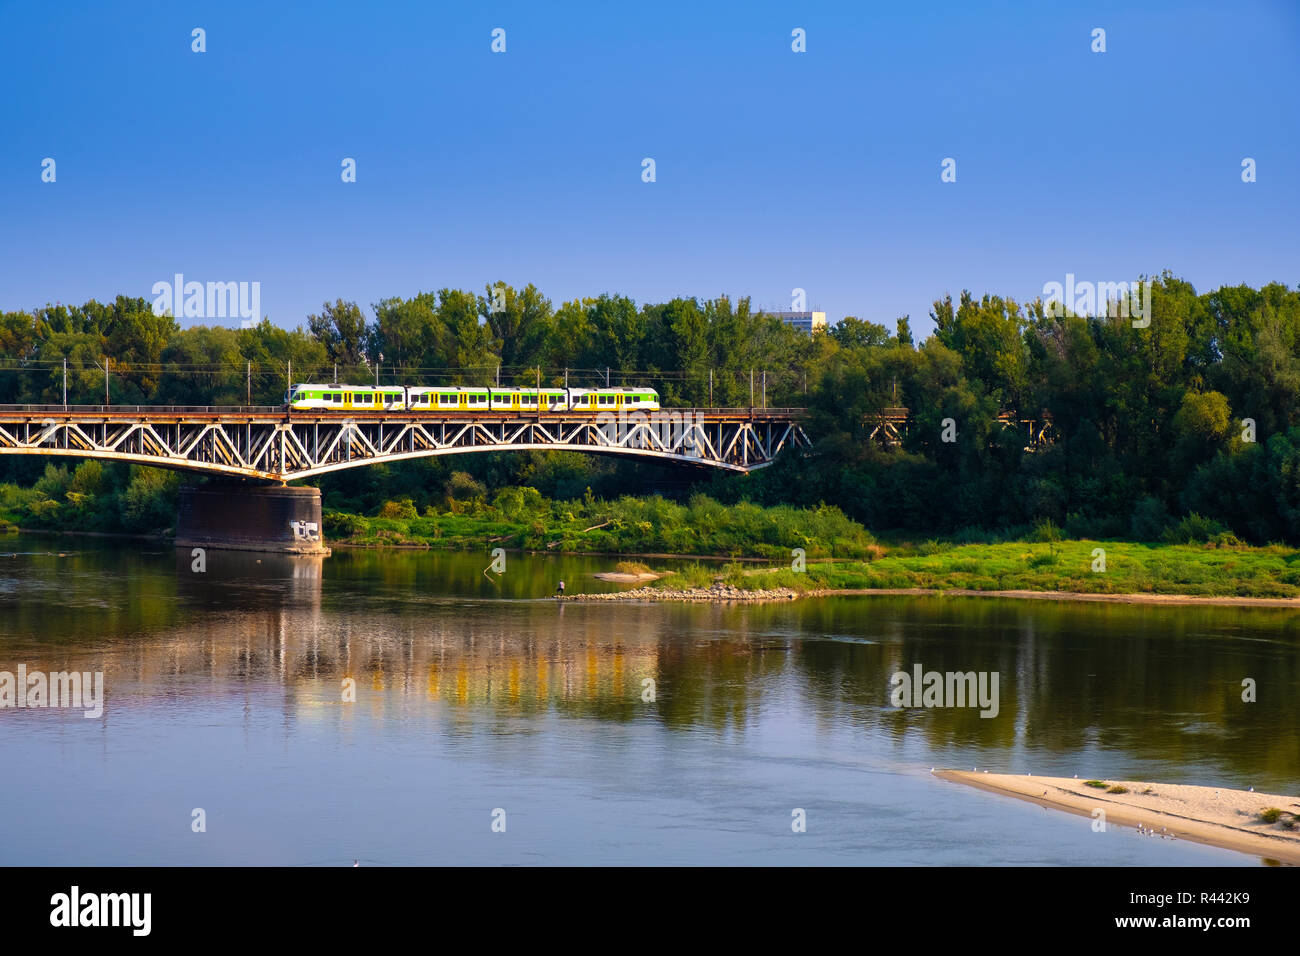 Warsaw, Mazovia / Poland - 2018/09/02: Panoramic view of the Vistula river with Most Srednicowy railway bridge and wooded Praga district of Warsaw - Stock Image